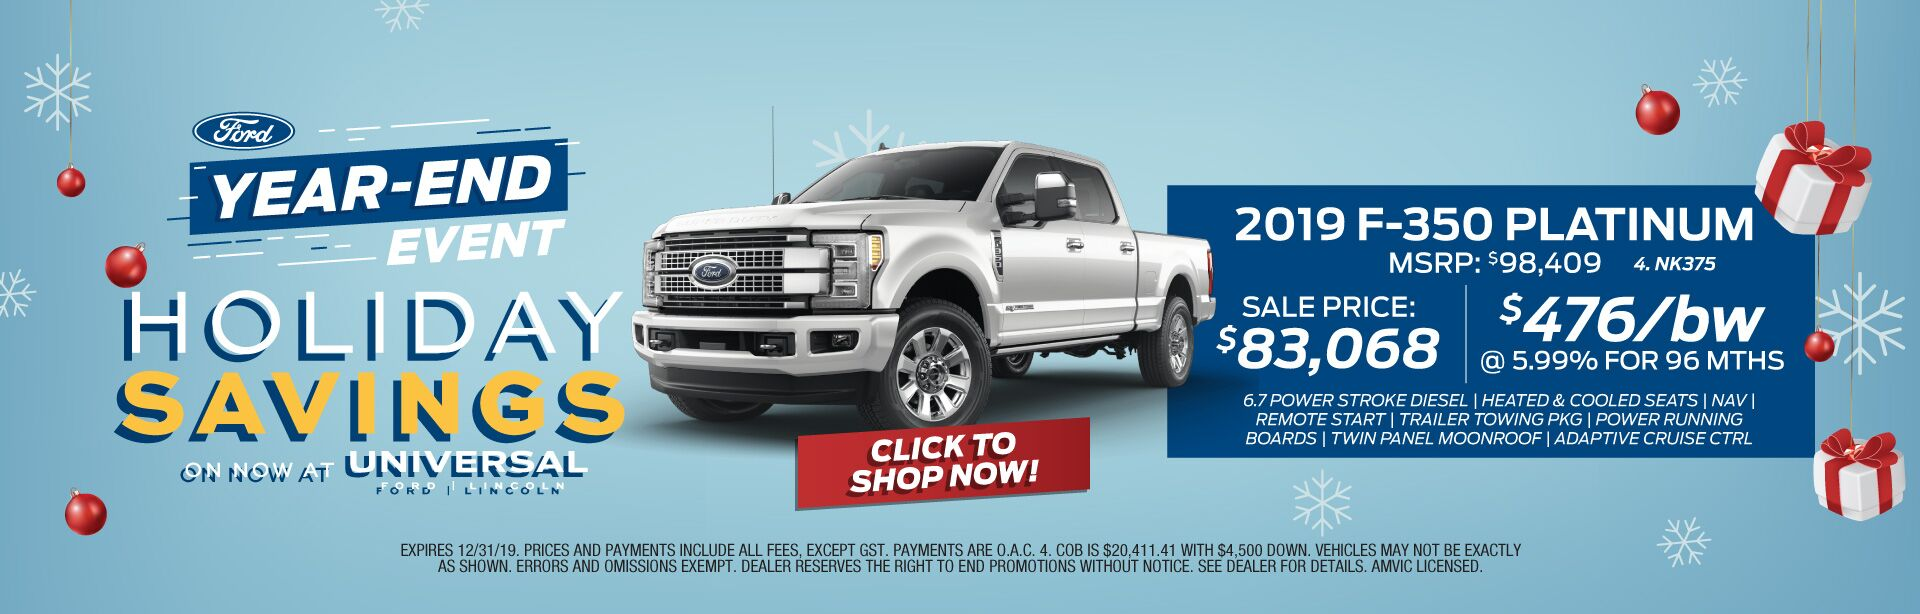 Year-End Event Holiday Savings - F350 Platinum